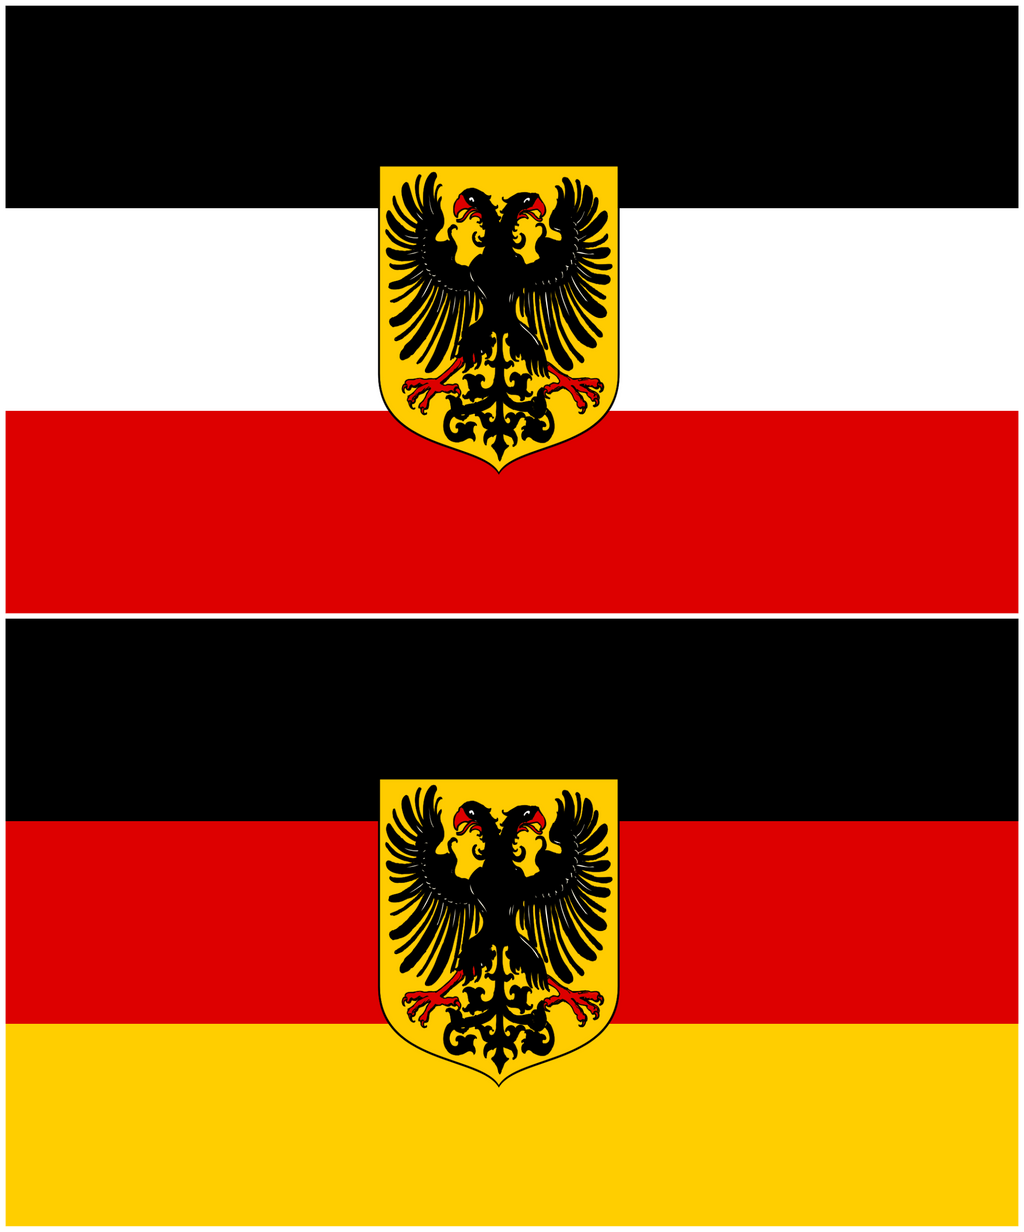 flags of greater germany comparison by lehnaru on deviantart